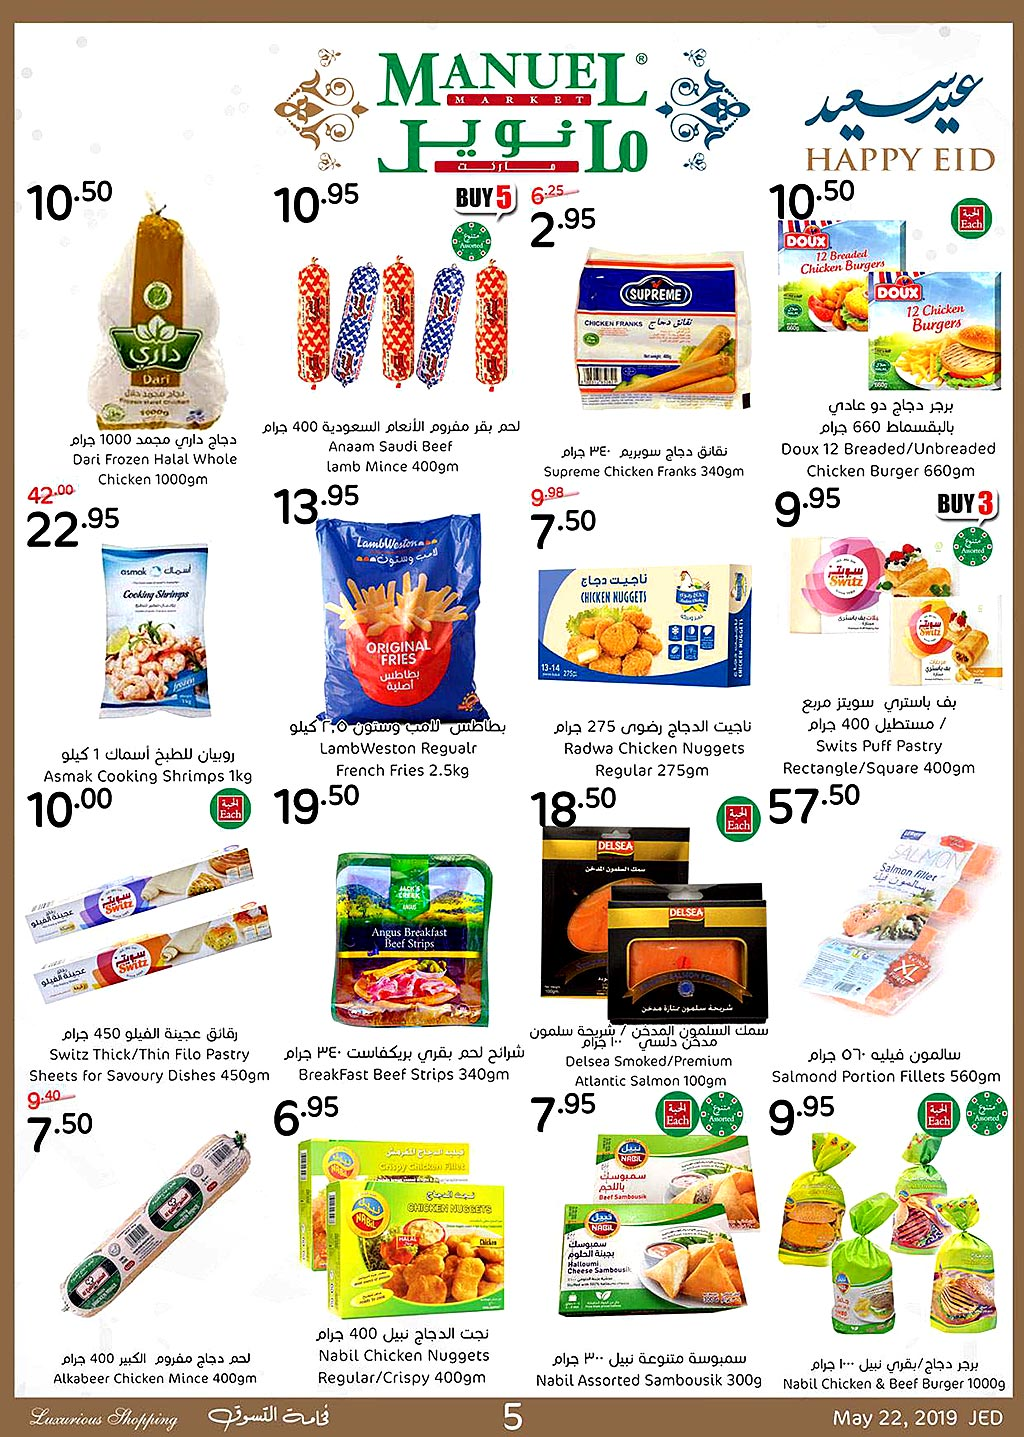 manuel-market offers from 22may to 28may 2019 page number 5 عروض مانويل ماركت من 22 مايو حتى 28 مايو 2019 صفحة رقم 5